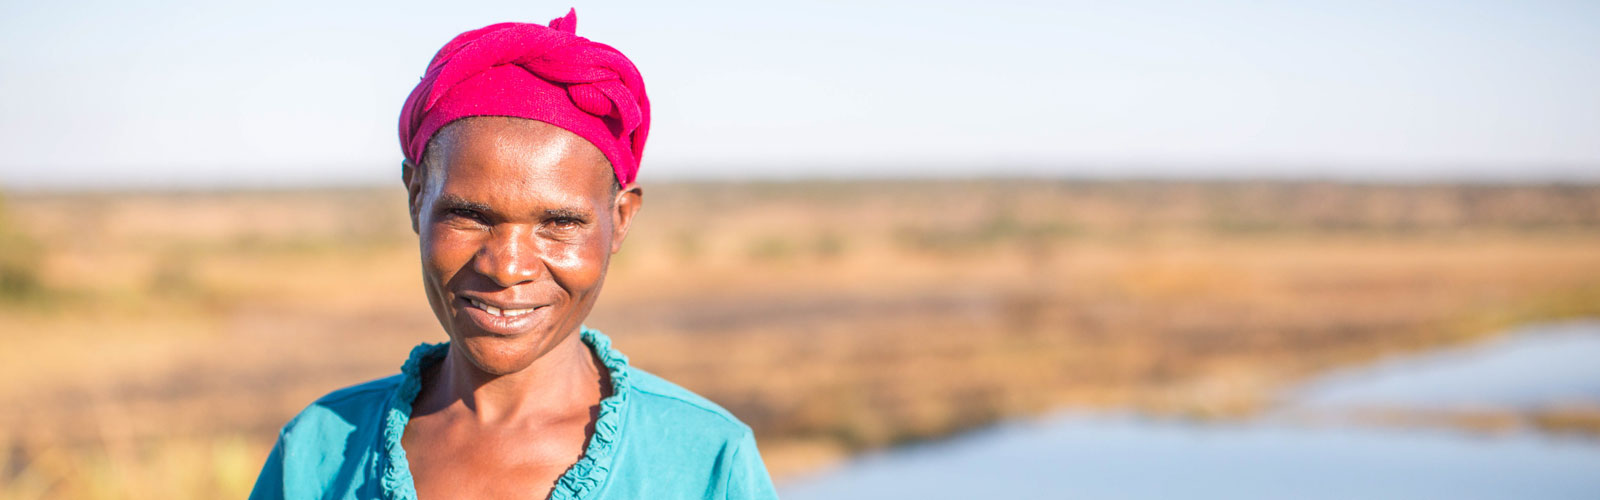 Find out about Florence and fish farming projects in Zambia this Lent.